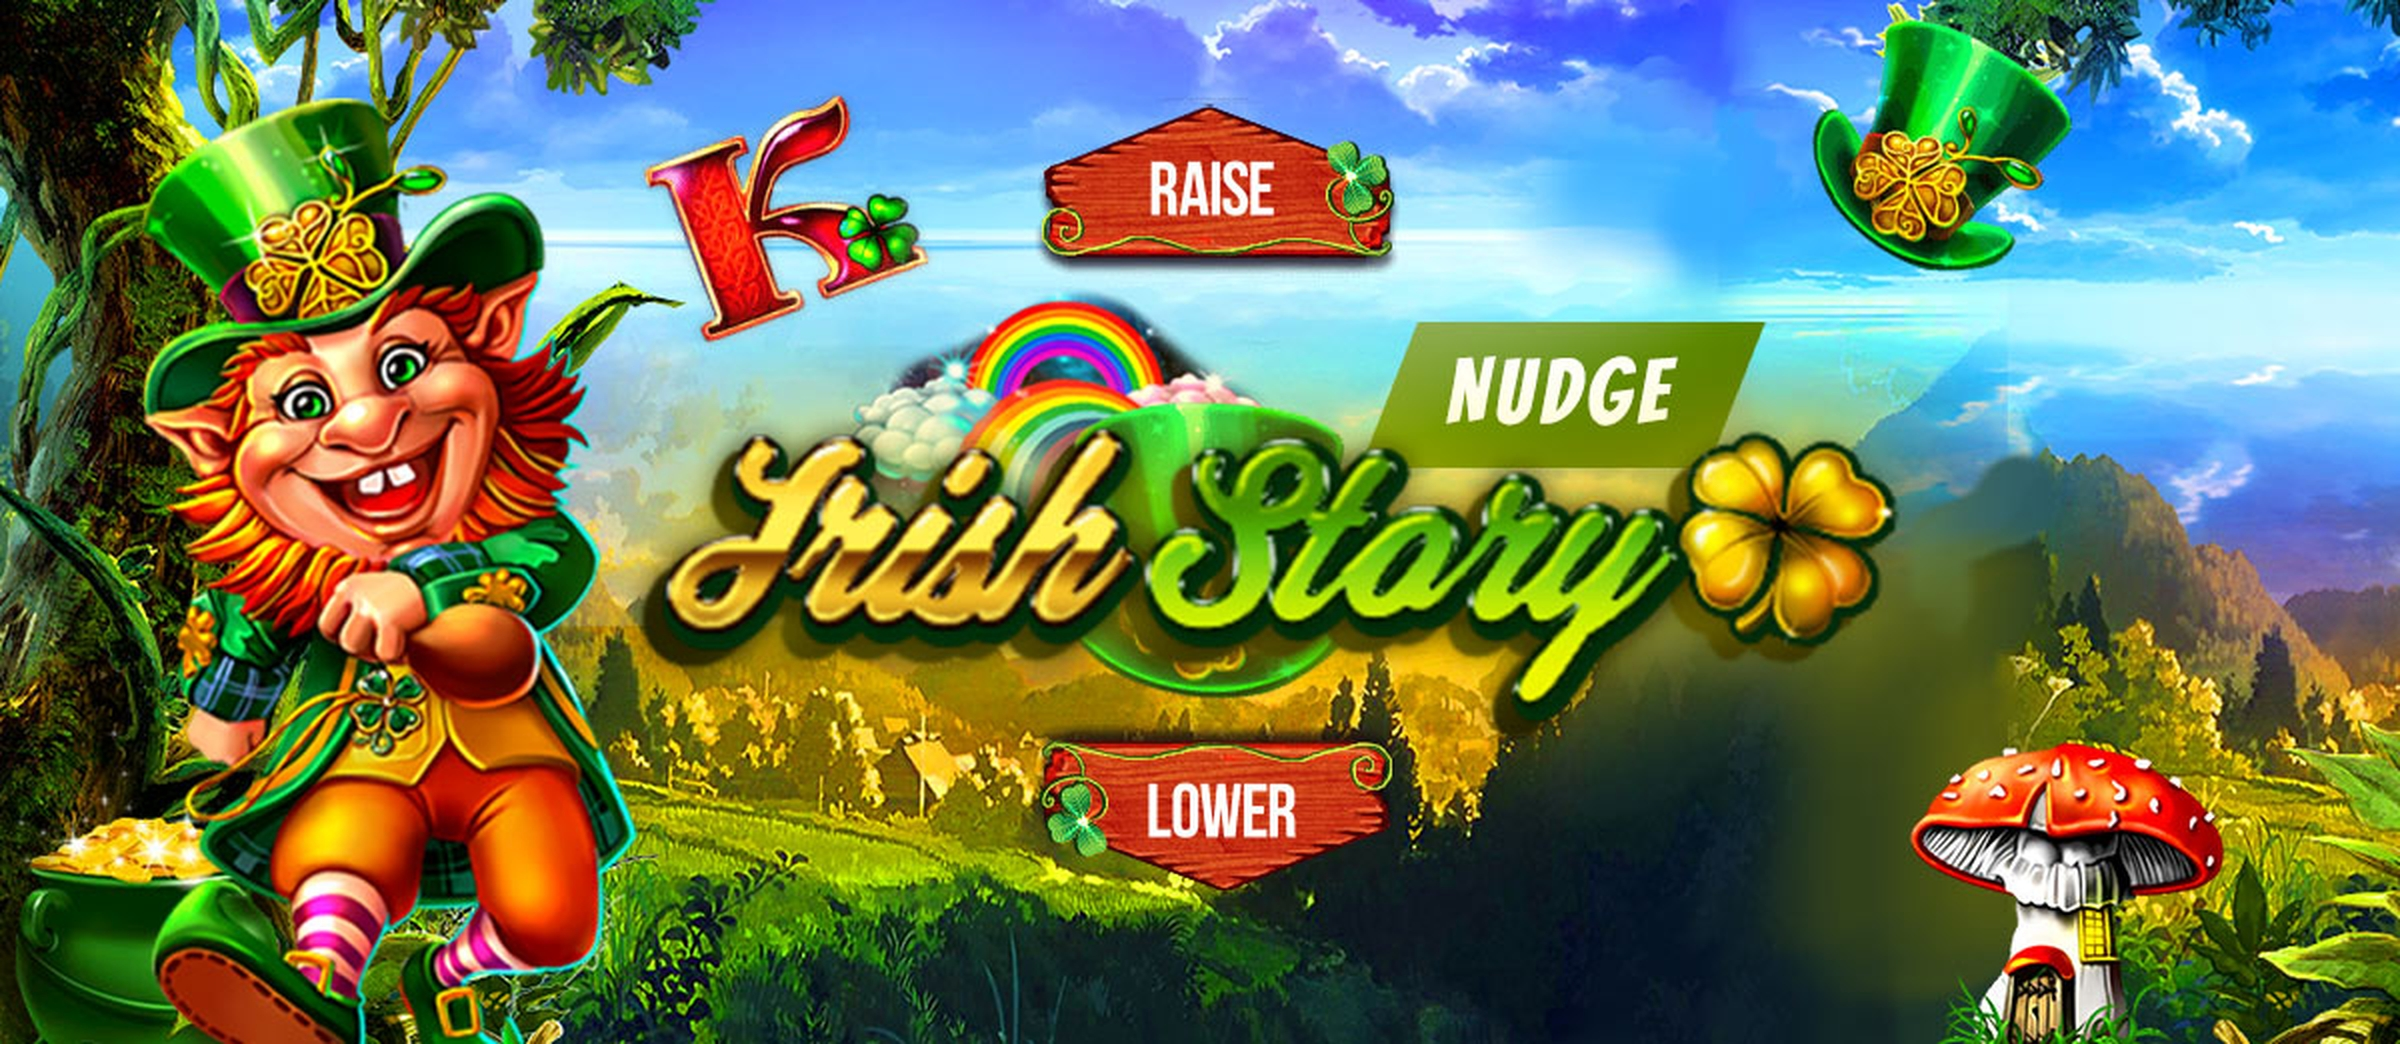 The Irish Story Online Slot Demo Game by Inbet Games